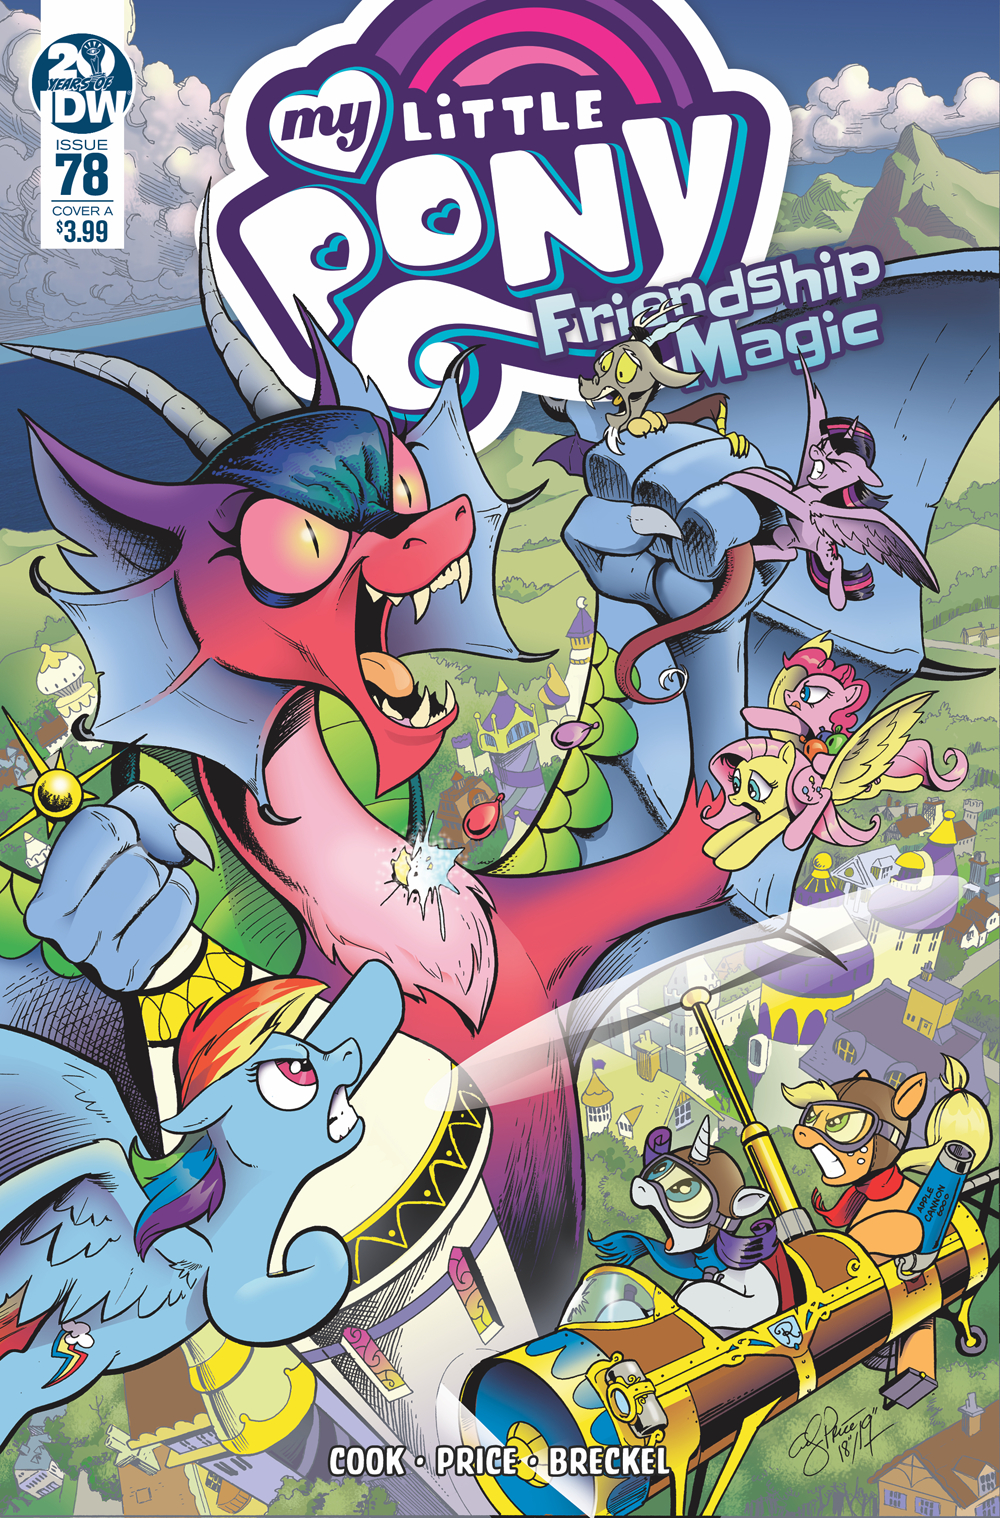 MY LITTLE PONY FRIENDSHIP IS MAGIC #78 CVR A PRICE